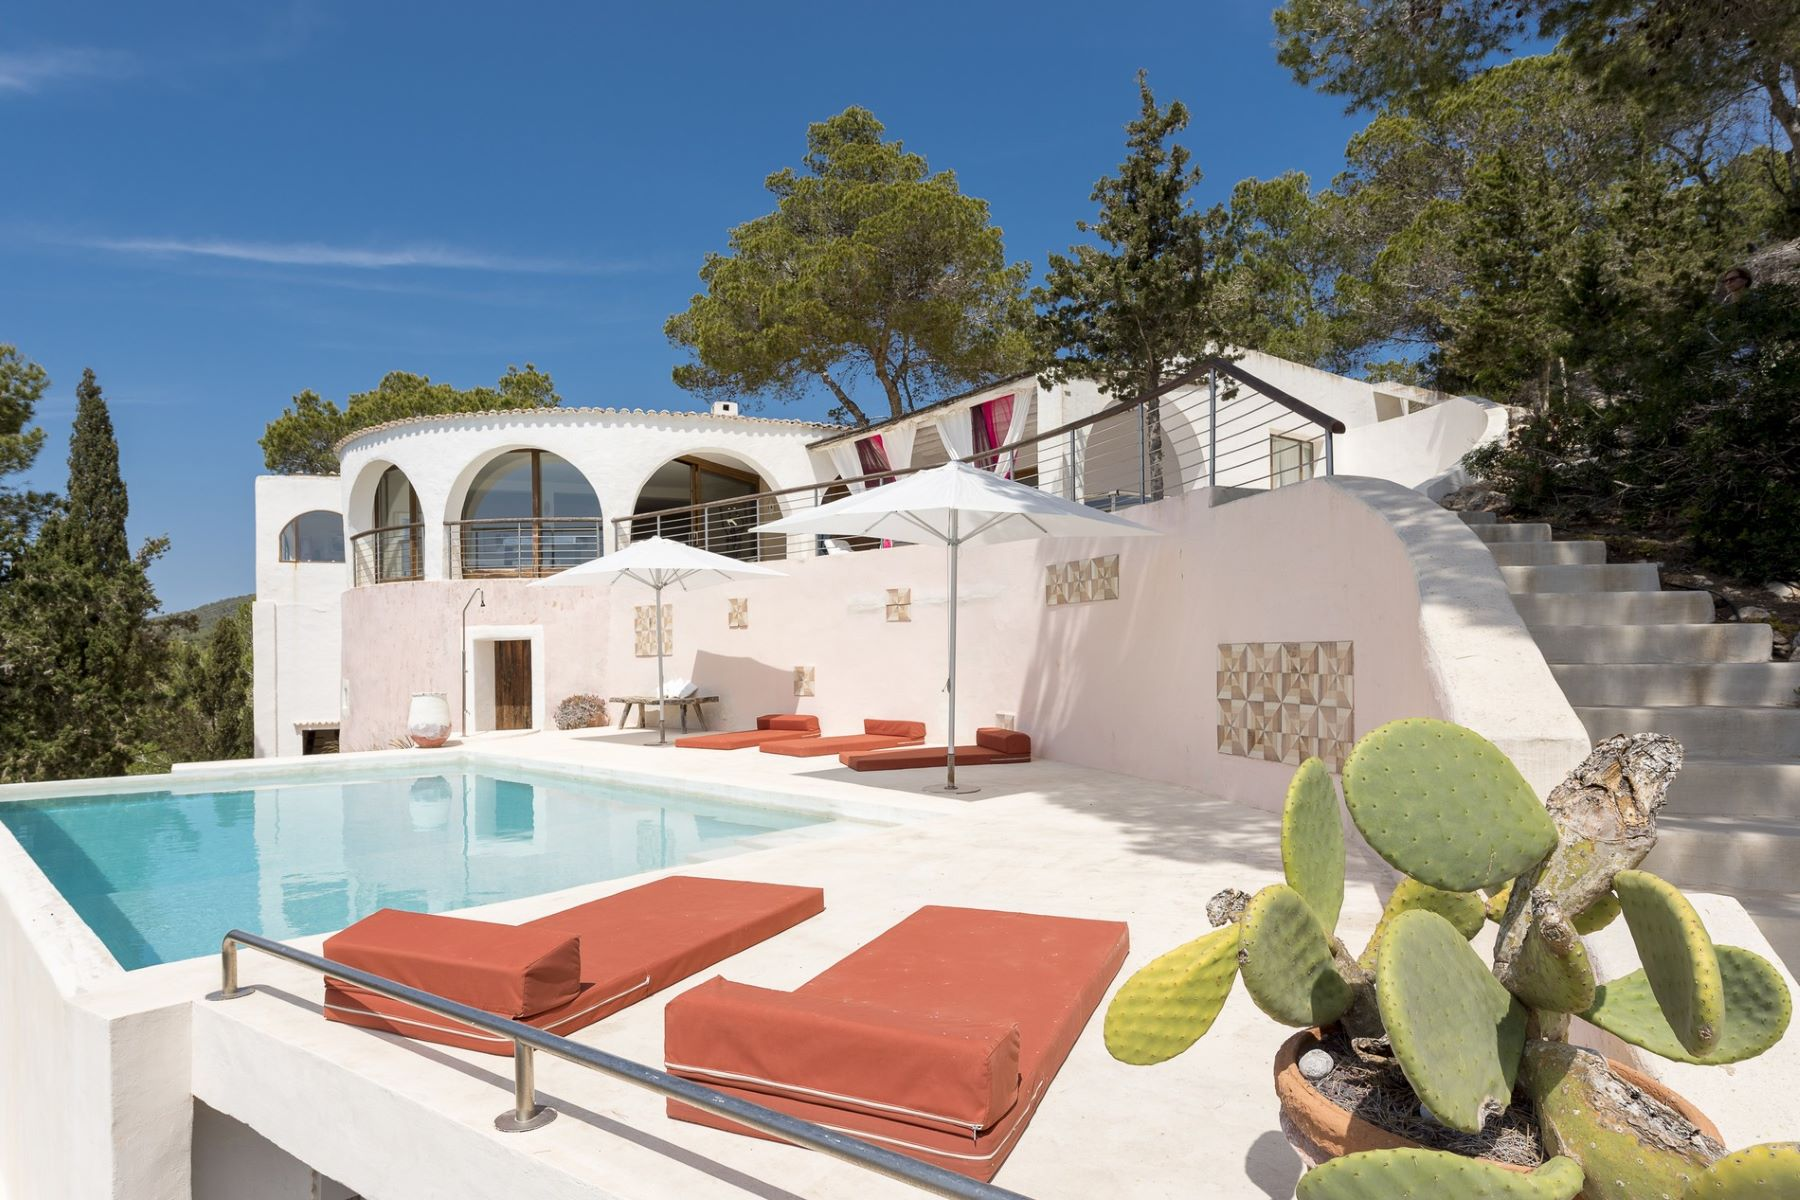 Single Family Home for Rent at Villa With Spectacular Sea Views San Jose, Ibiza, 07820 Spain